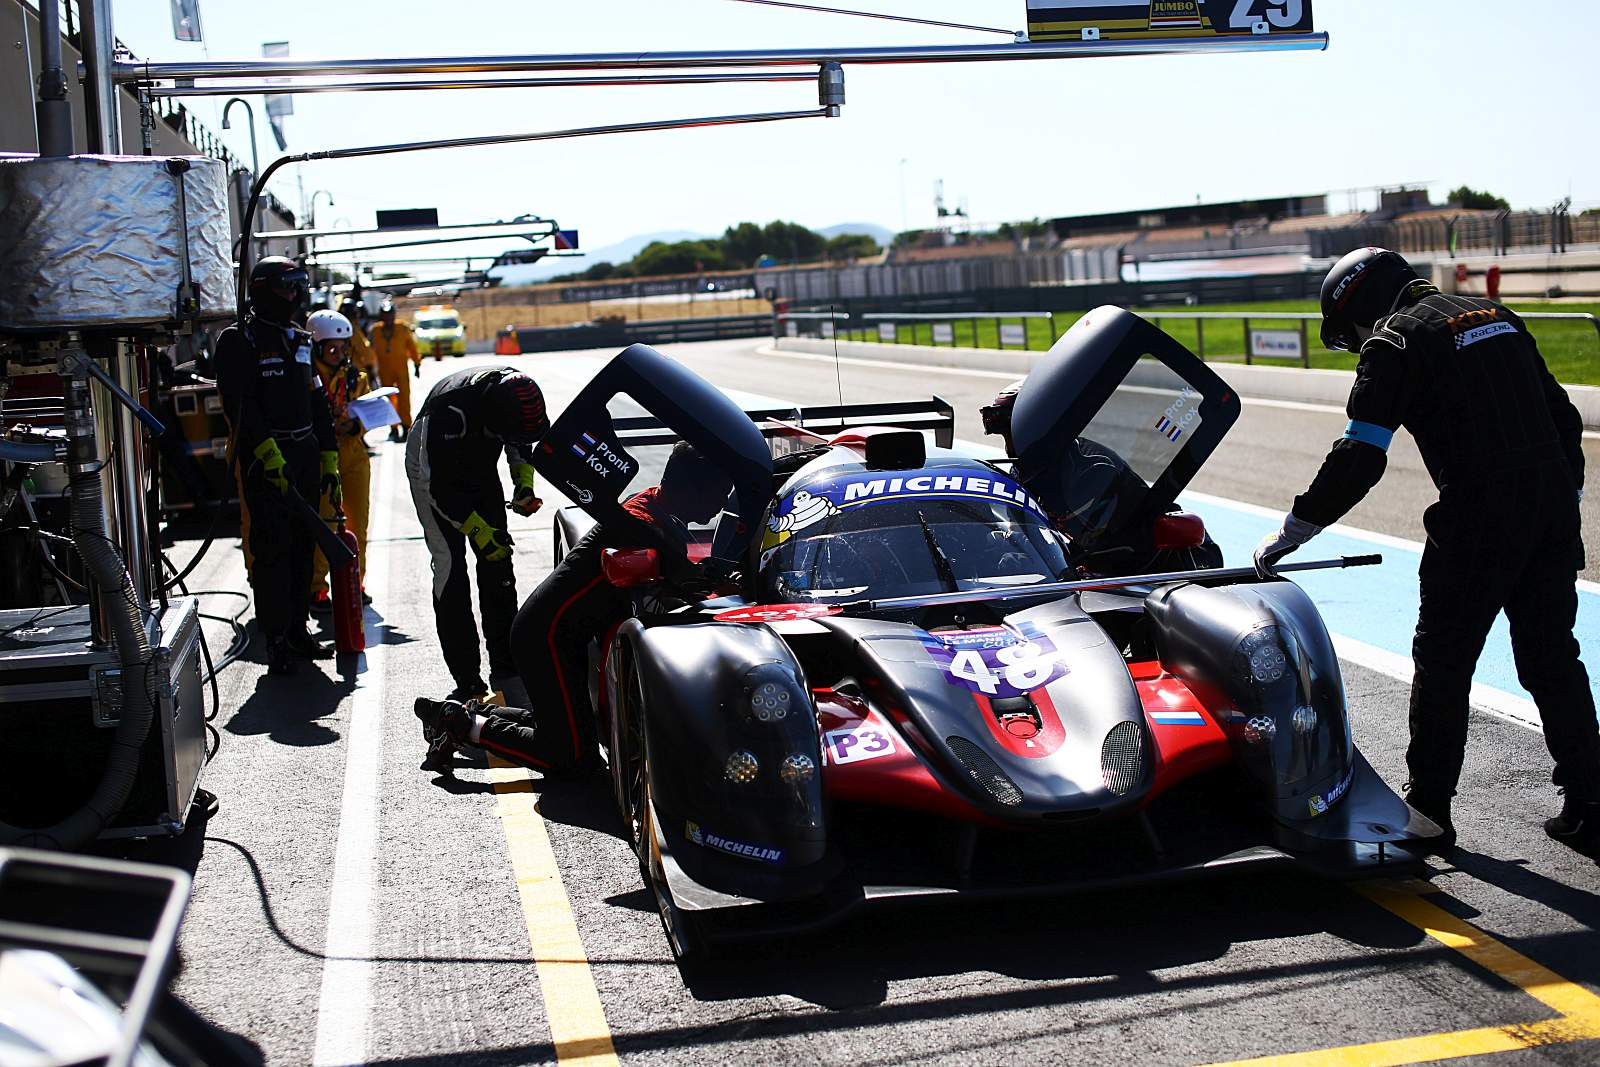 kox-racing-road-to-le-mans-lmp3-003